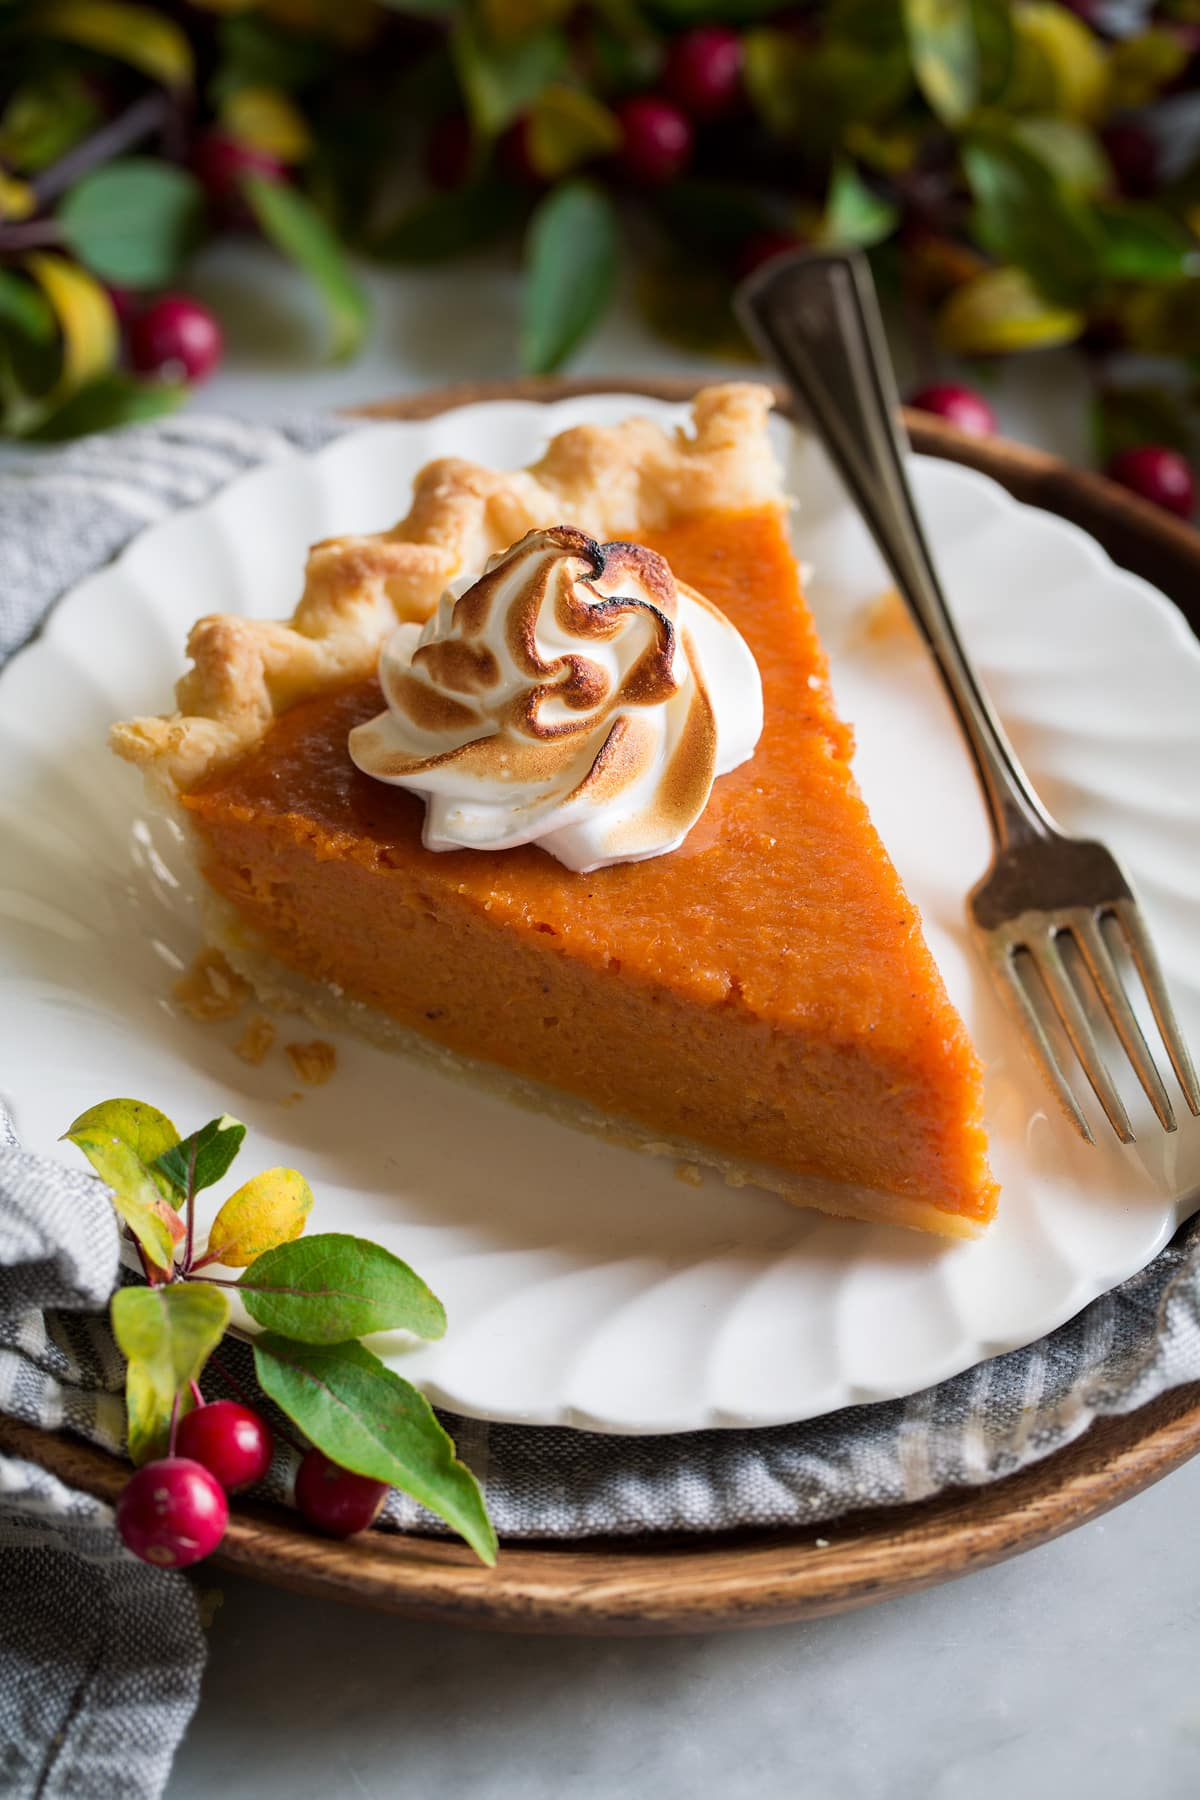 Sweet Potato Pie Recipe - Cooking Classy